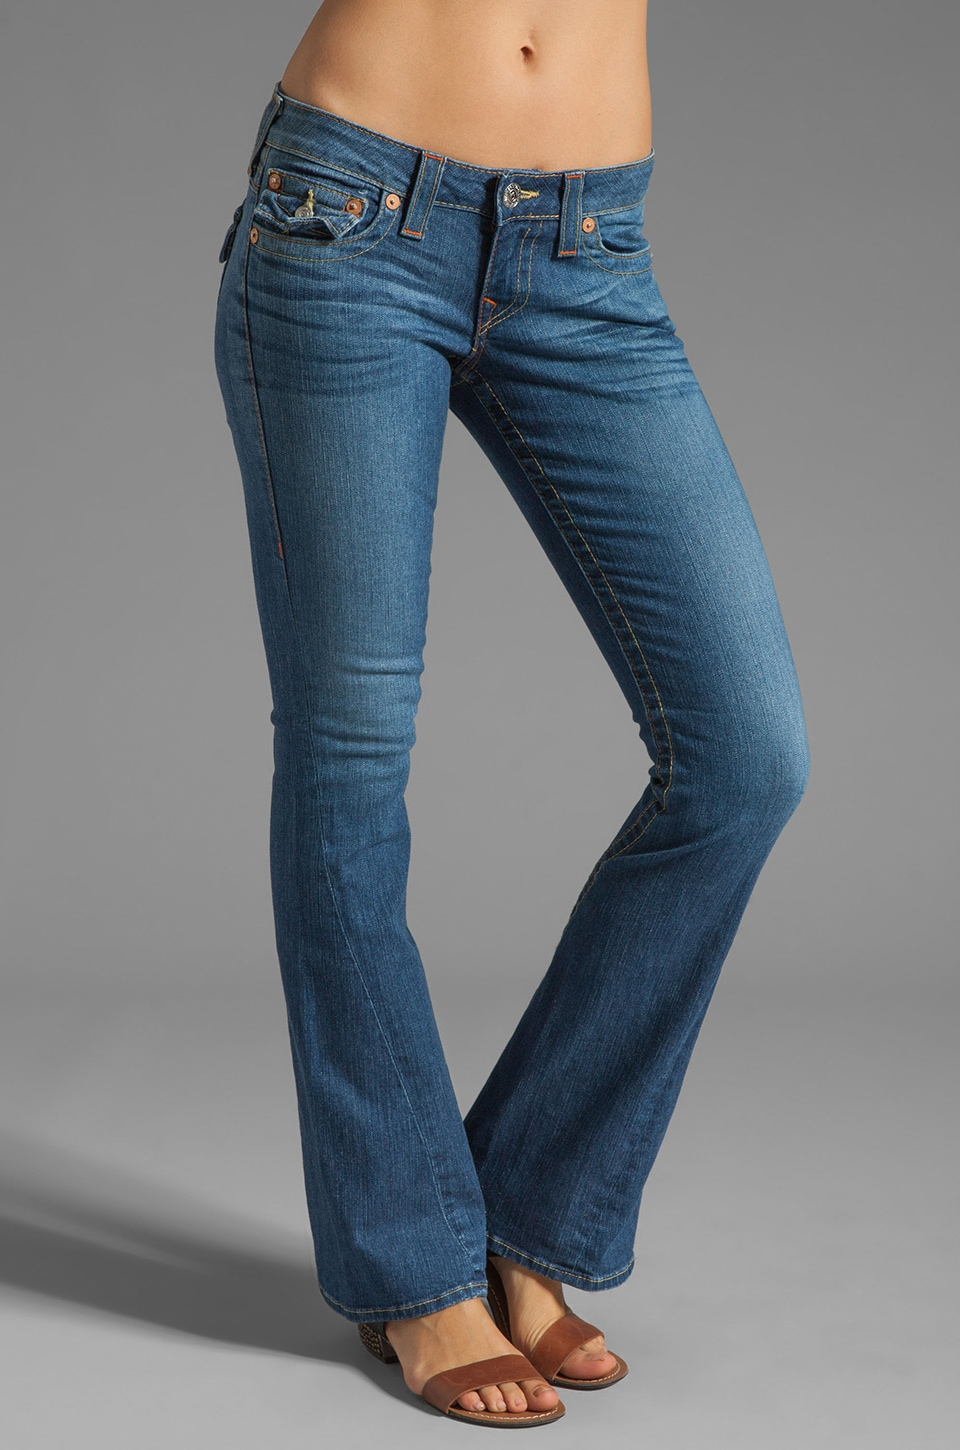 True Religion Classic Joey Twisted Seam Flare Jean in Fallspoint